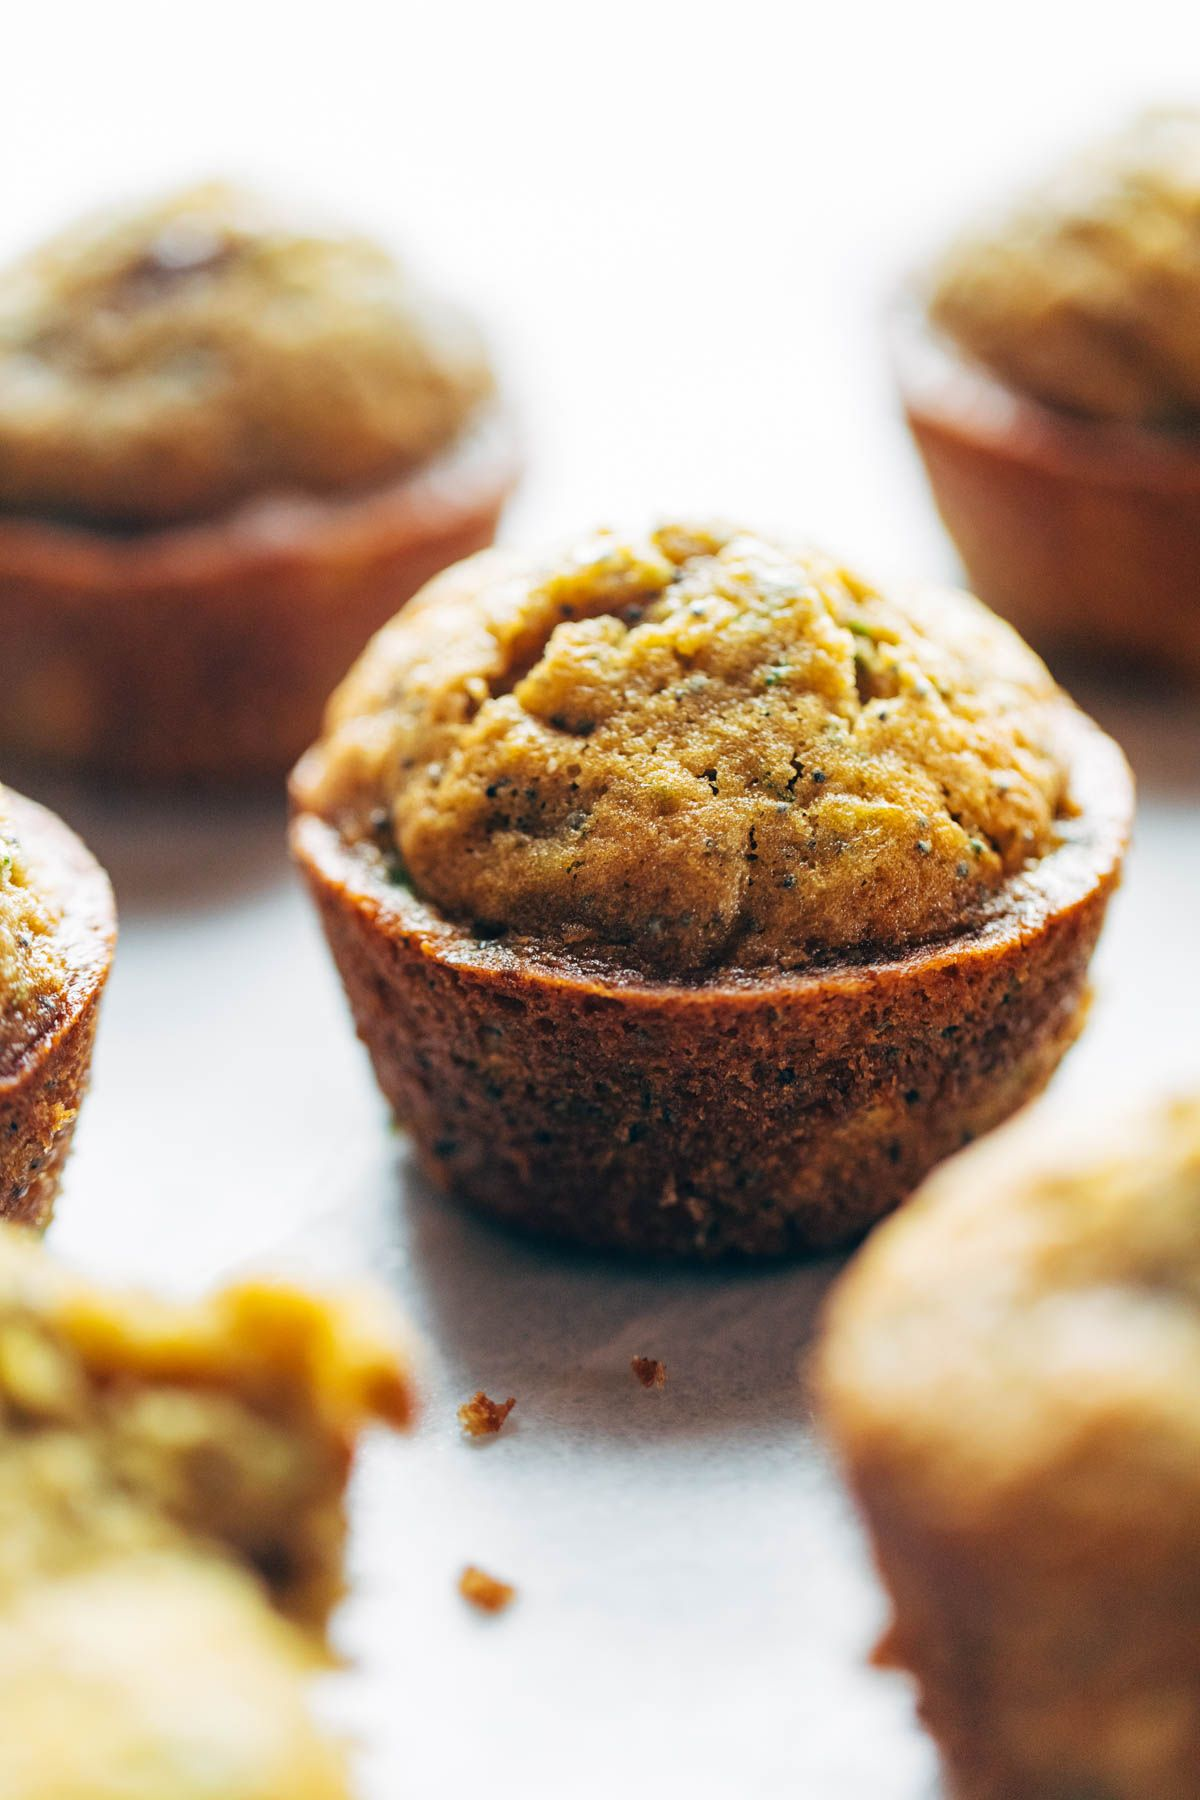 Lemon Poppyseed Muffins with Zucchini